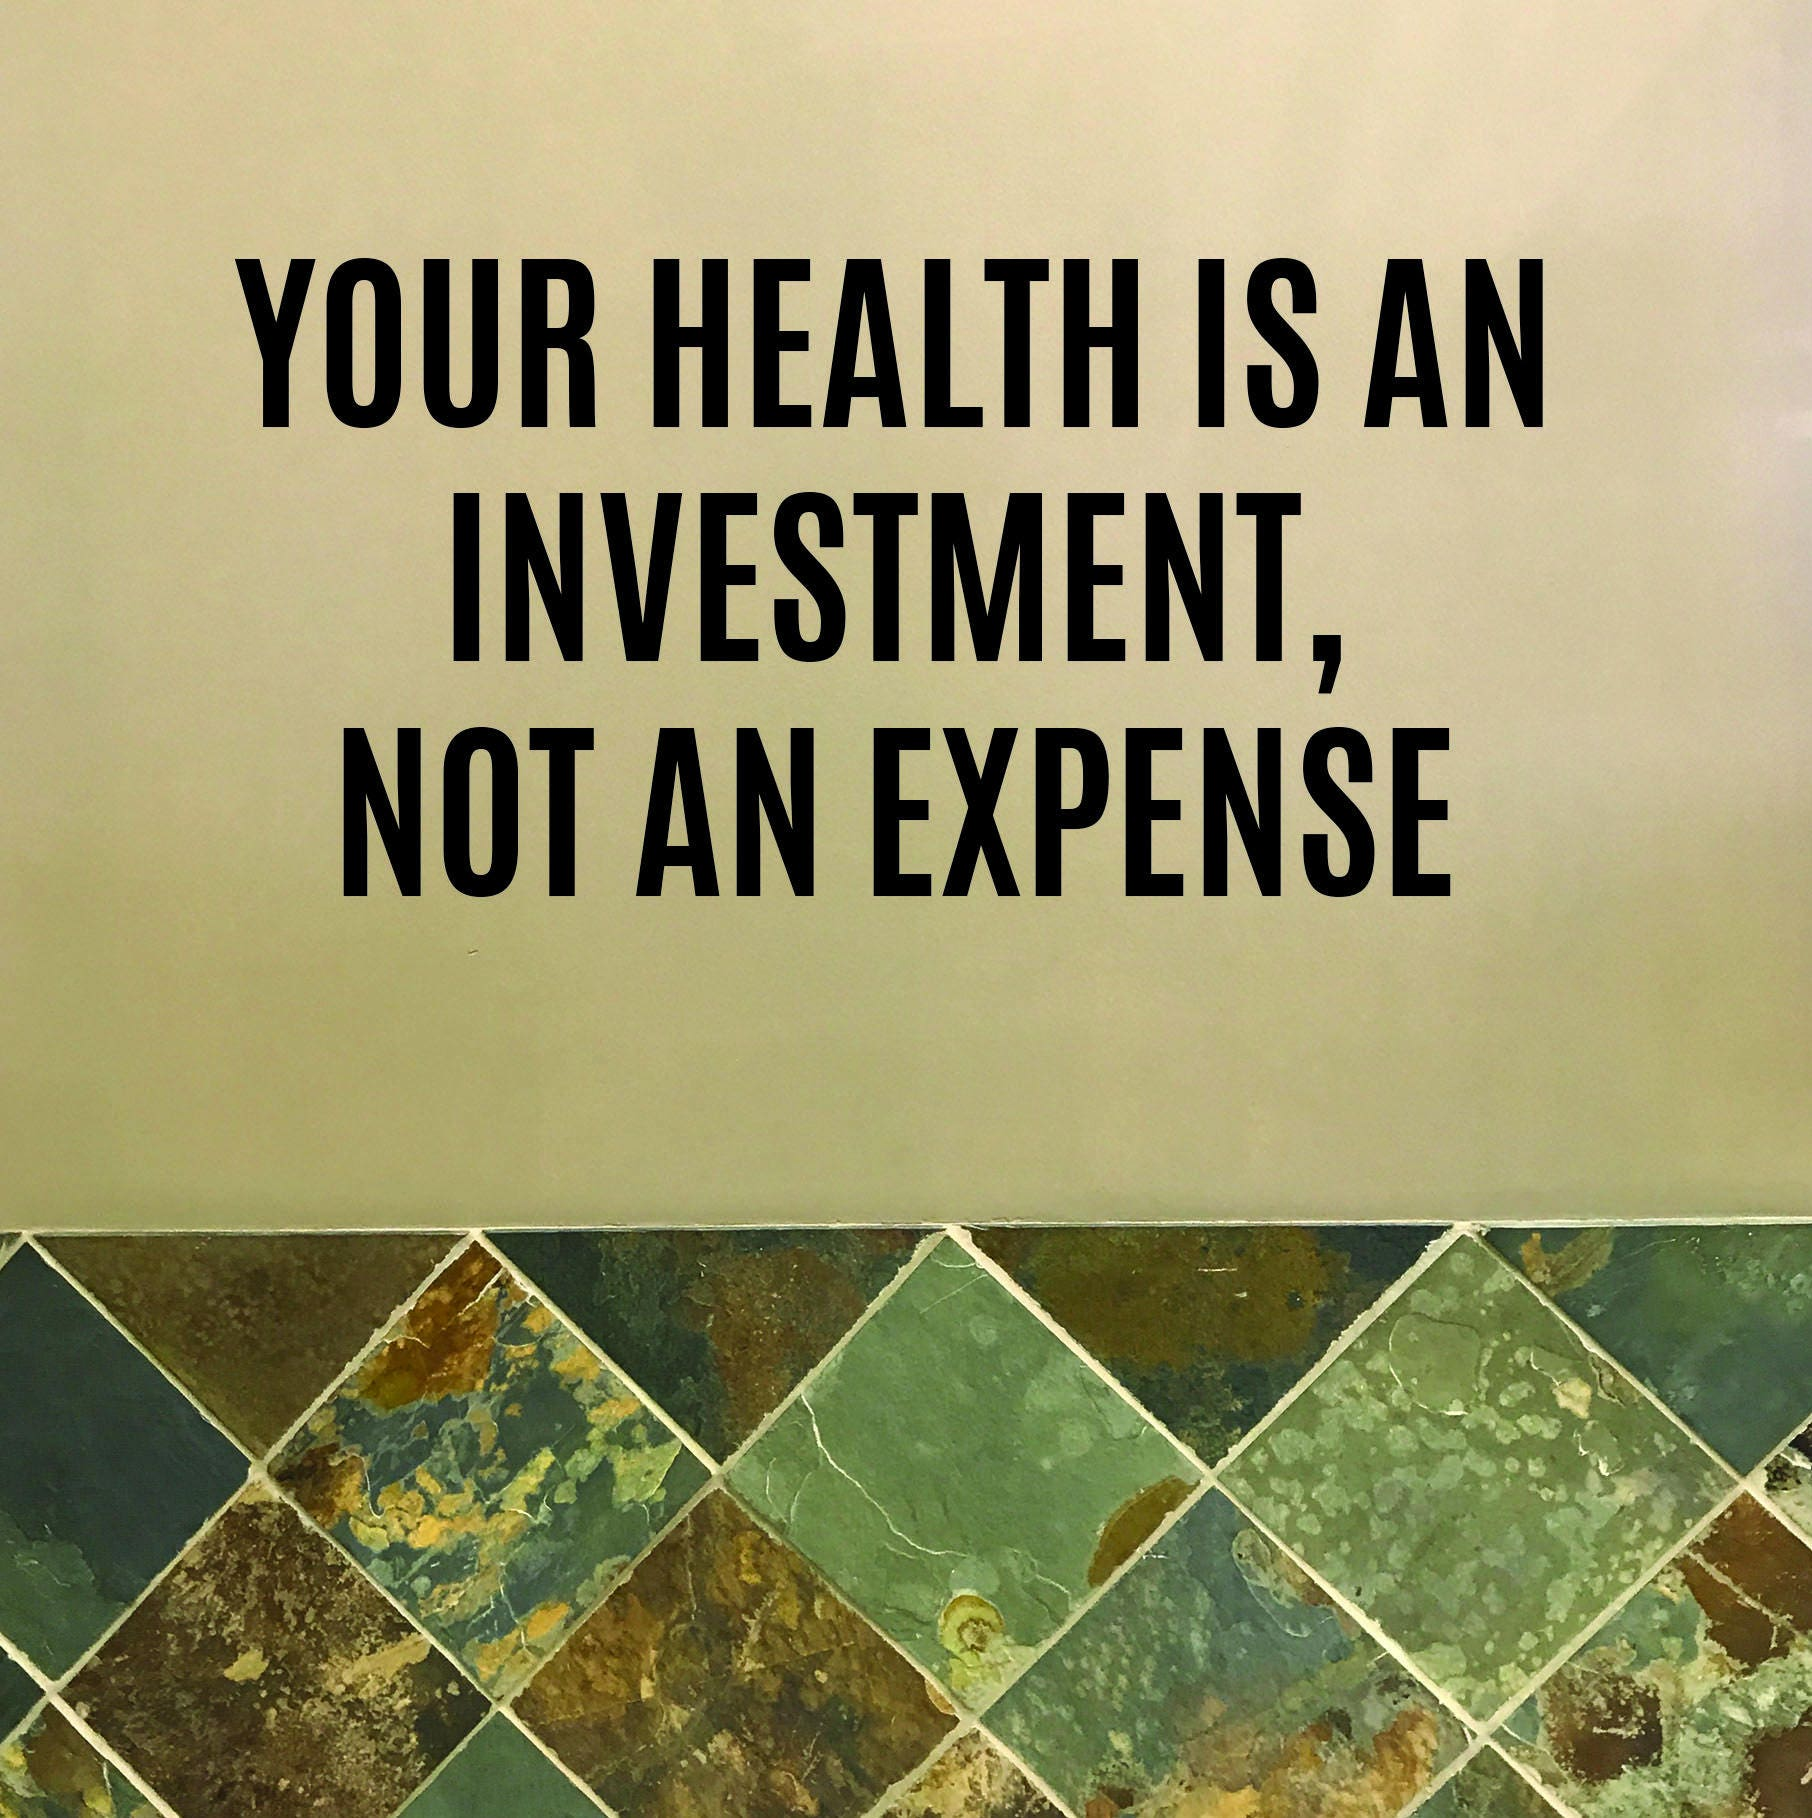 Running Store Decor, Fitness Shop Decor, Healthy Living Decor, Your ...